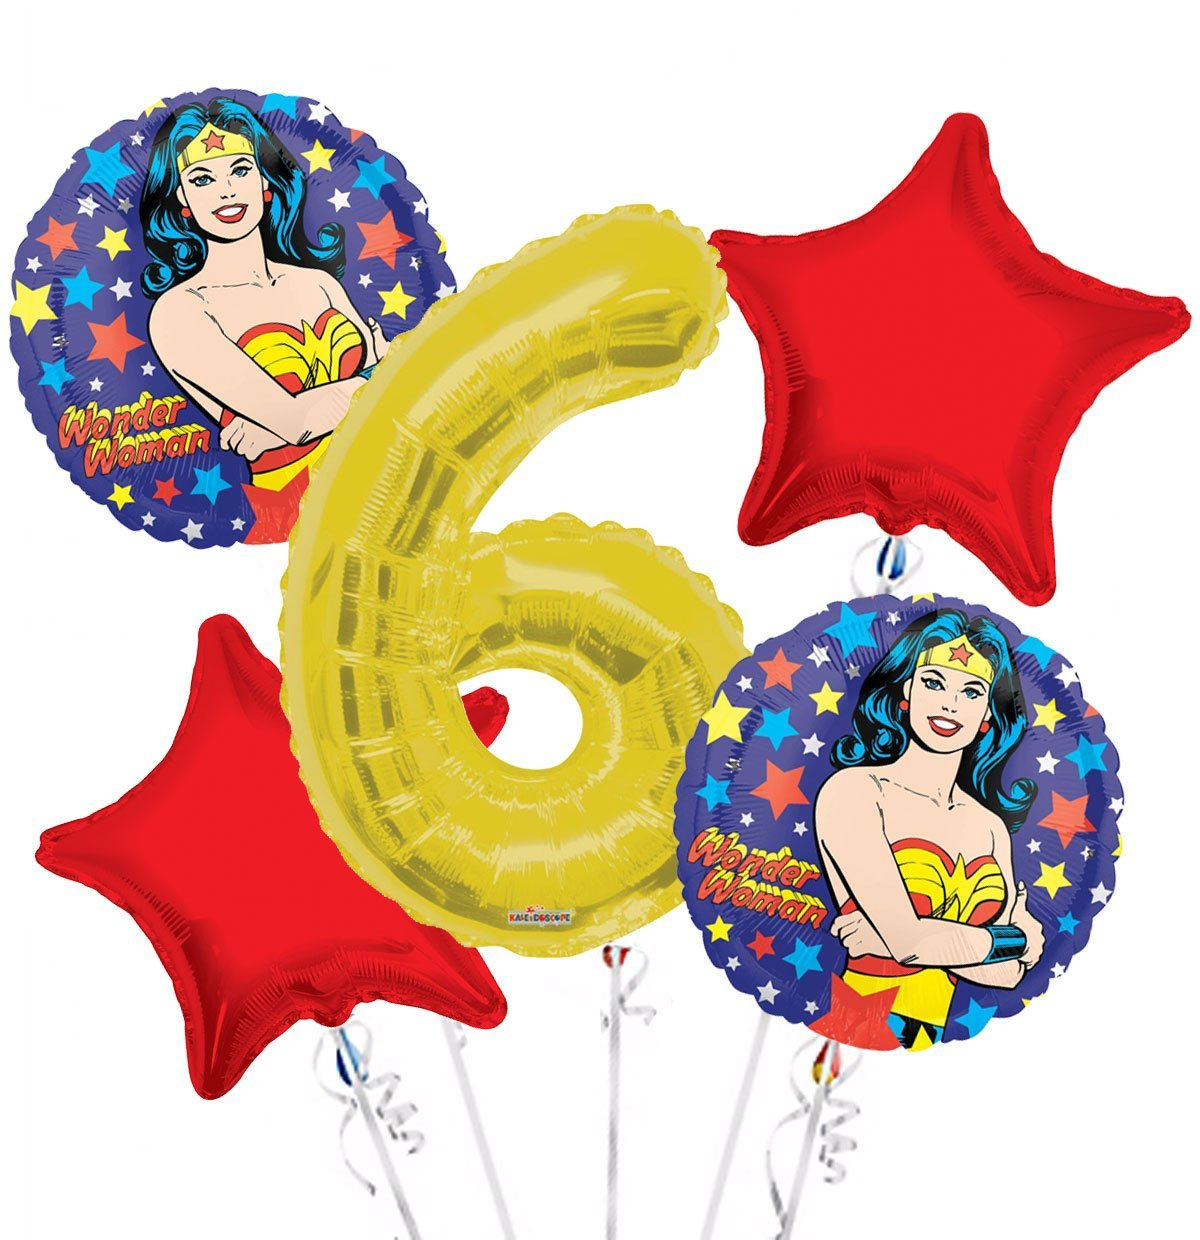 Wonder Women Balloon Bouquet 6th Birthday 5 pcs - Party Supplies, 1 Giant Number 6 Balloon, 34in By Viva Party